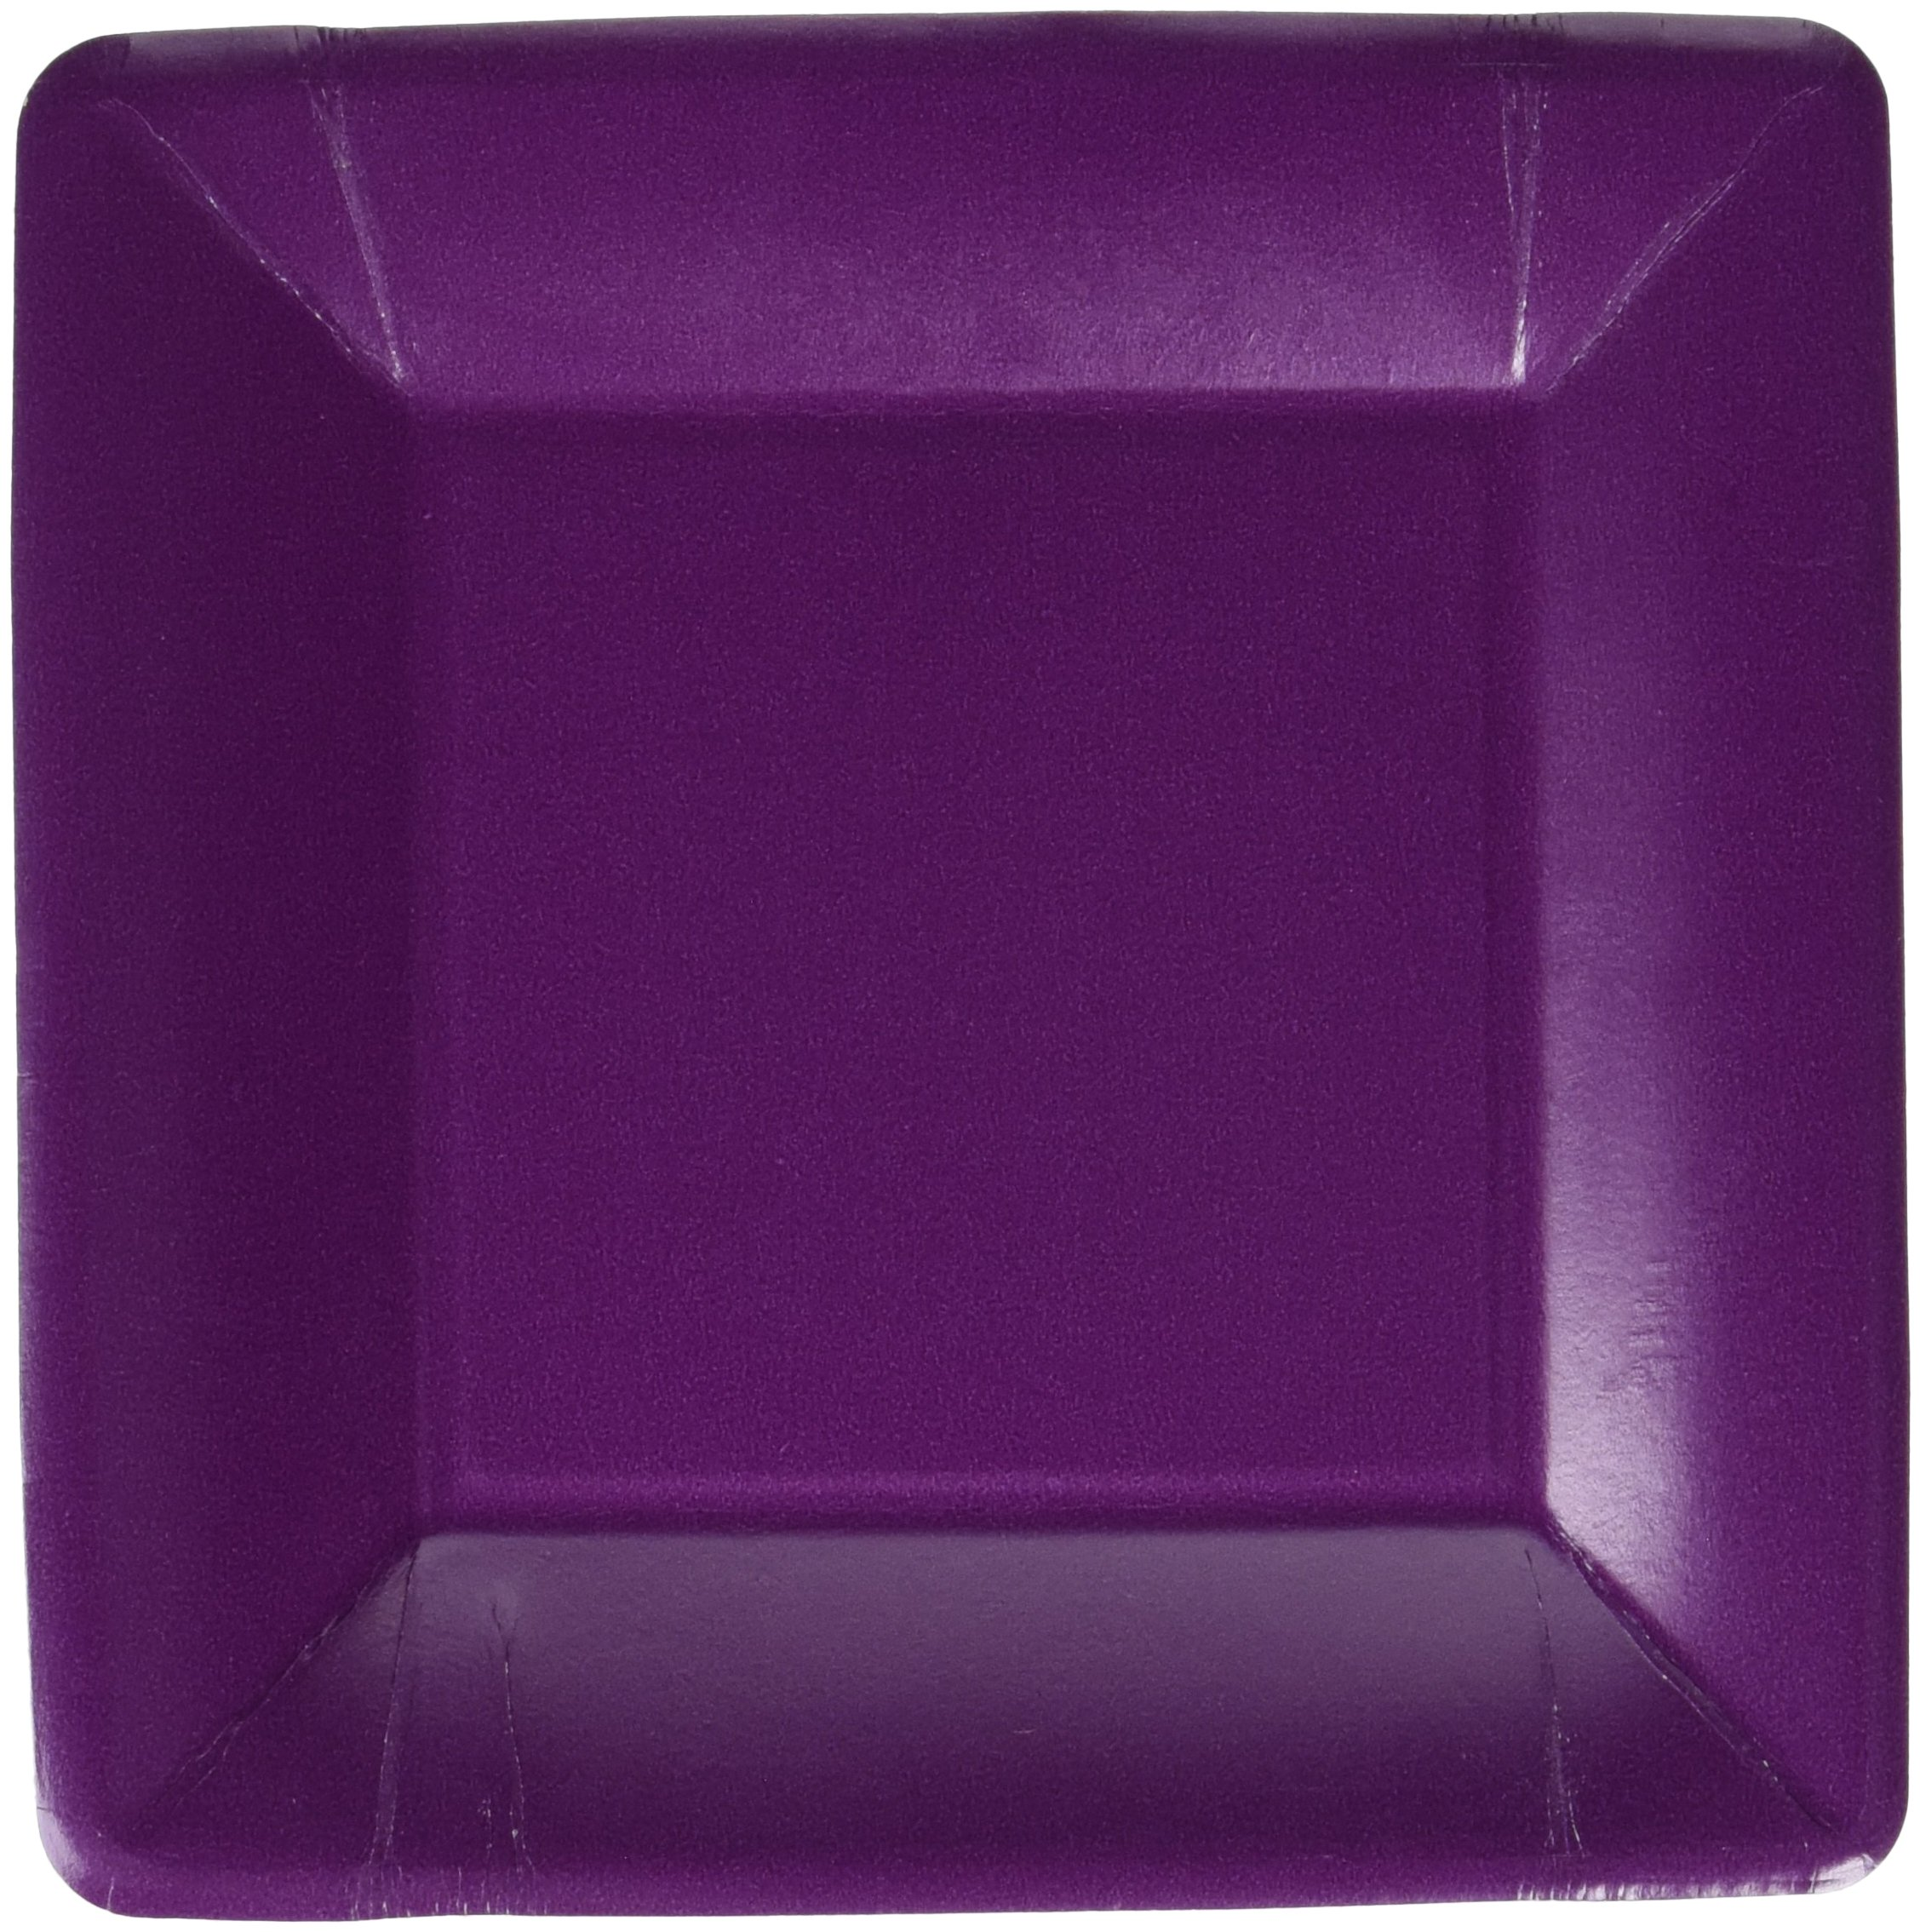 Durable Plain Square Eco Party Plates Tableware, Plum, Paper, 7'' x 7'', Pack of 20